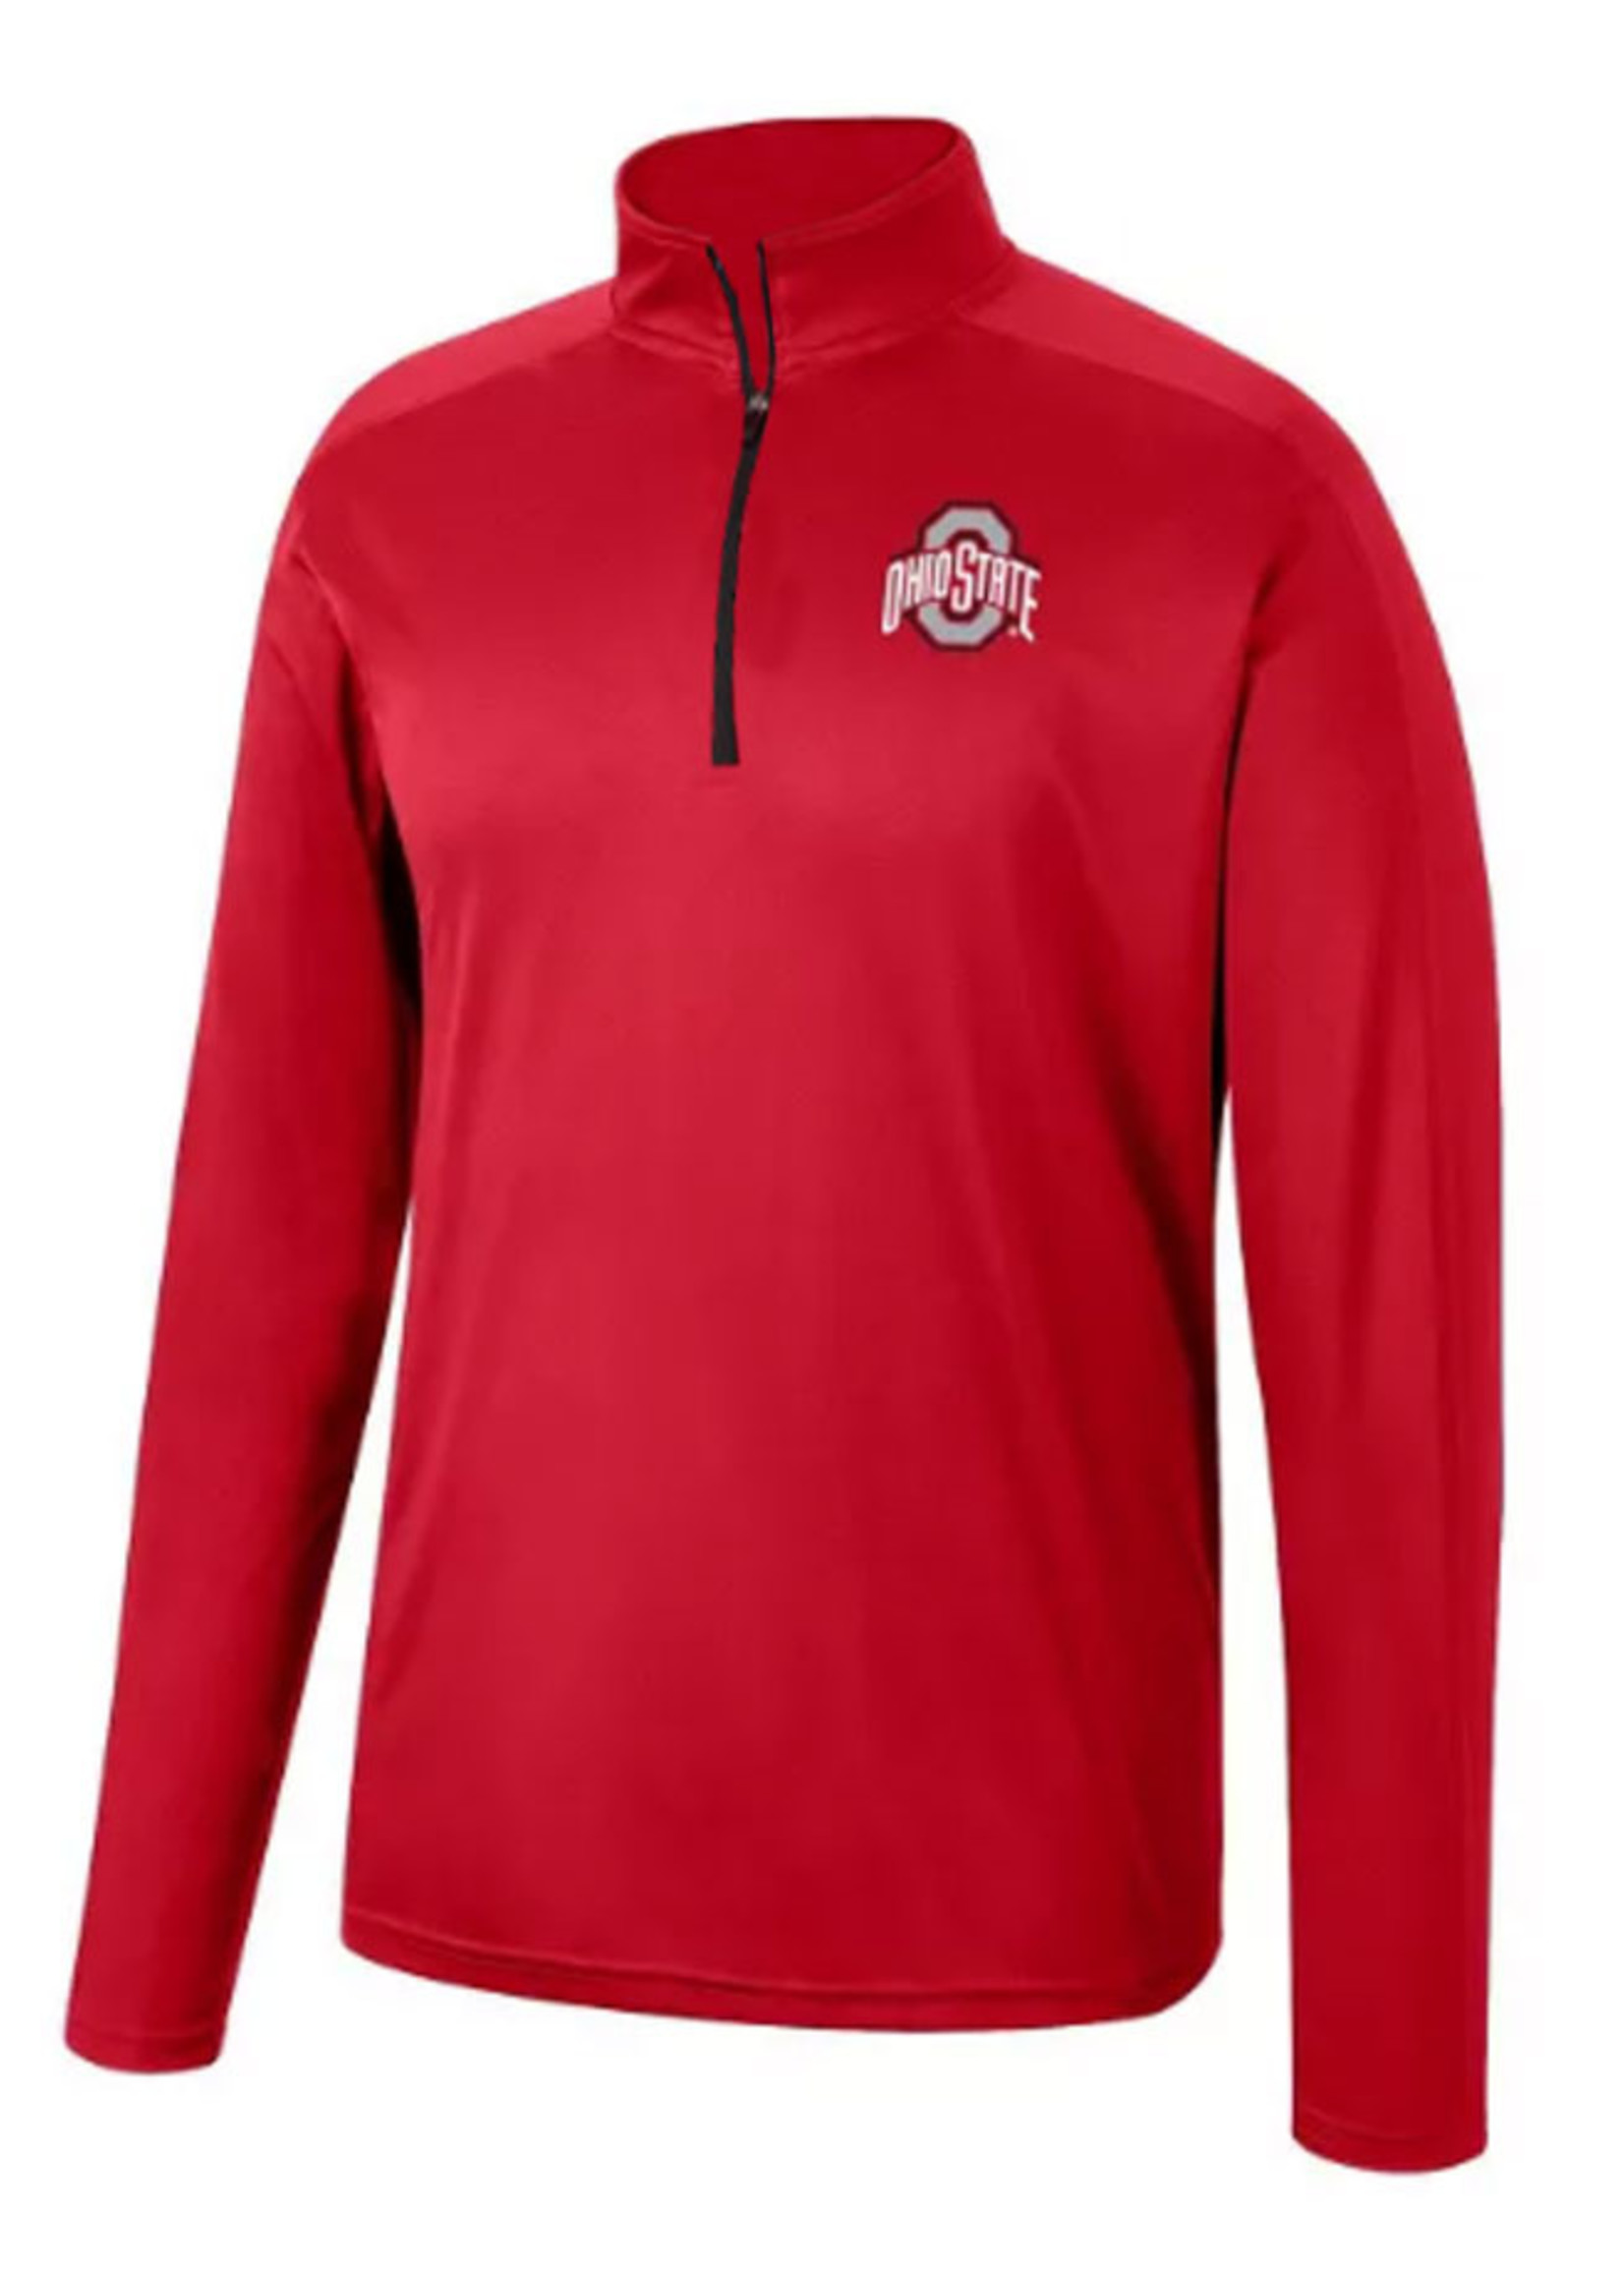 Top of the World Ohio State Buckeyes Red Quarter-Zip Pullover